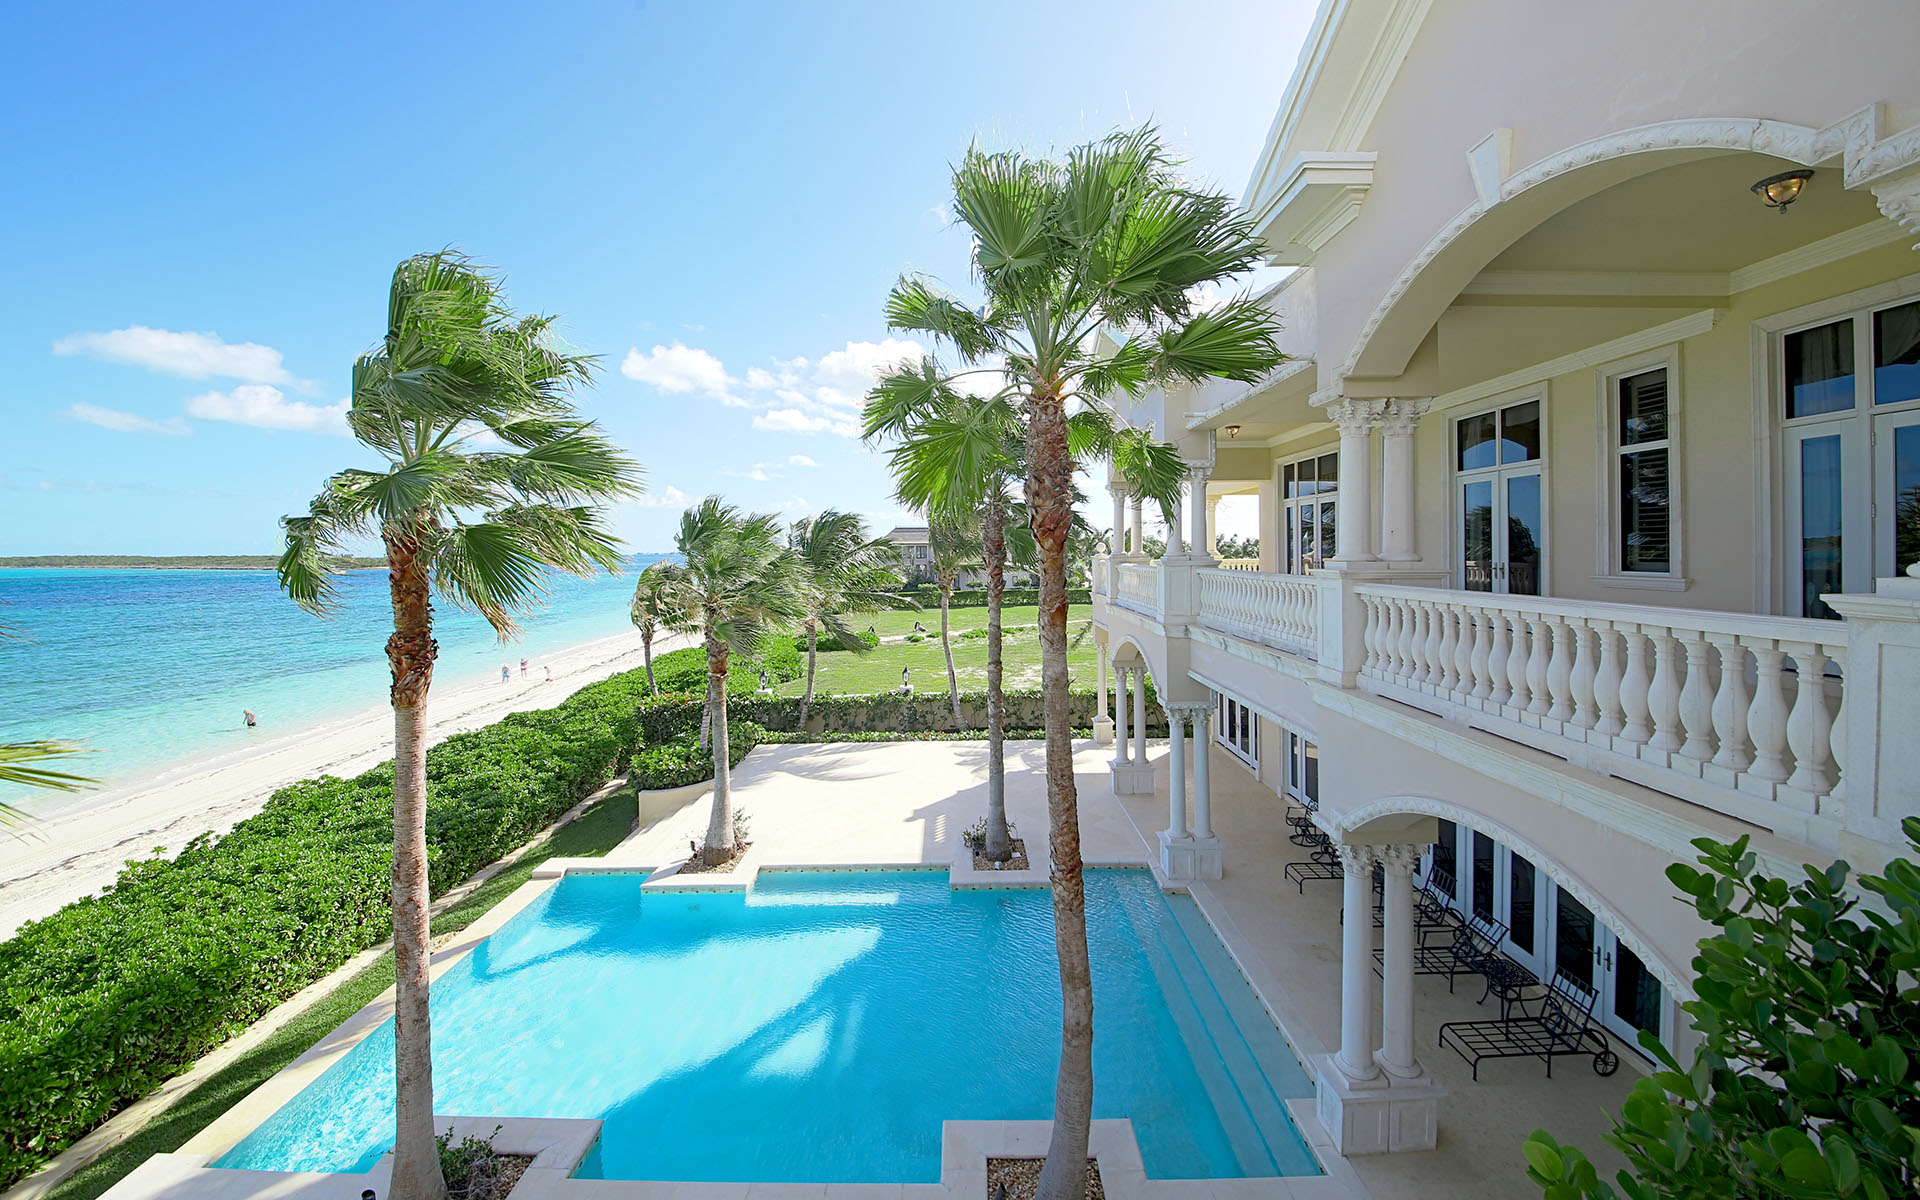 Single Family Home for Sale at Beachfront Mansion in Ocean Club Estates, Paradise Island Ocean Club Estates, Paradise Island, Nassau And Paradise Island Bahamas